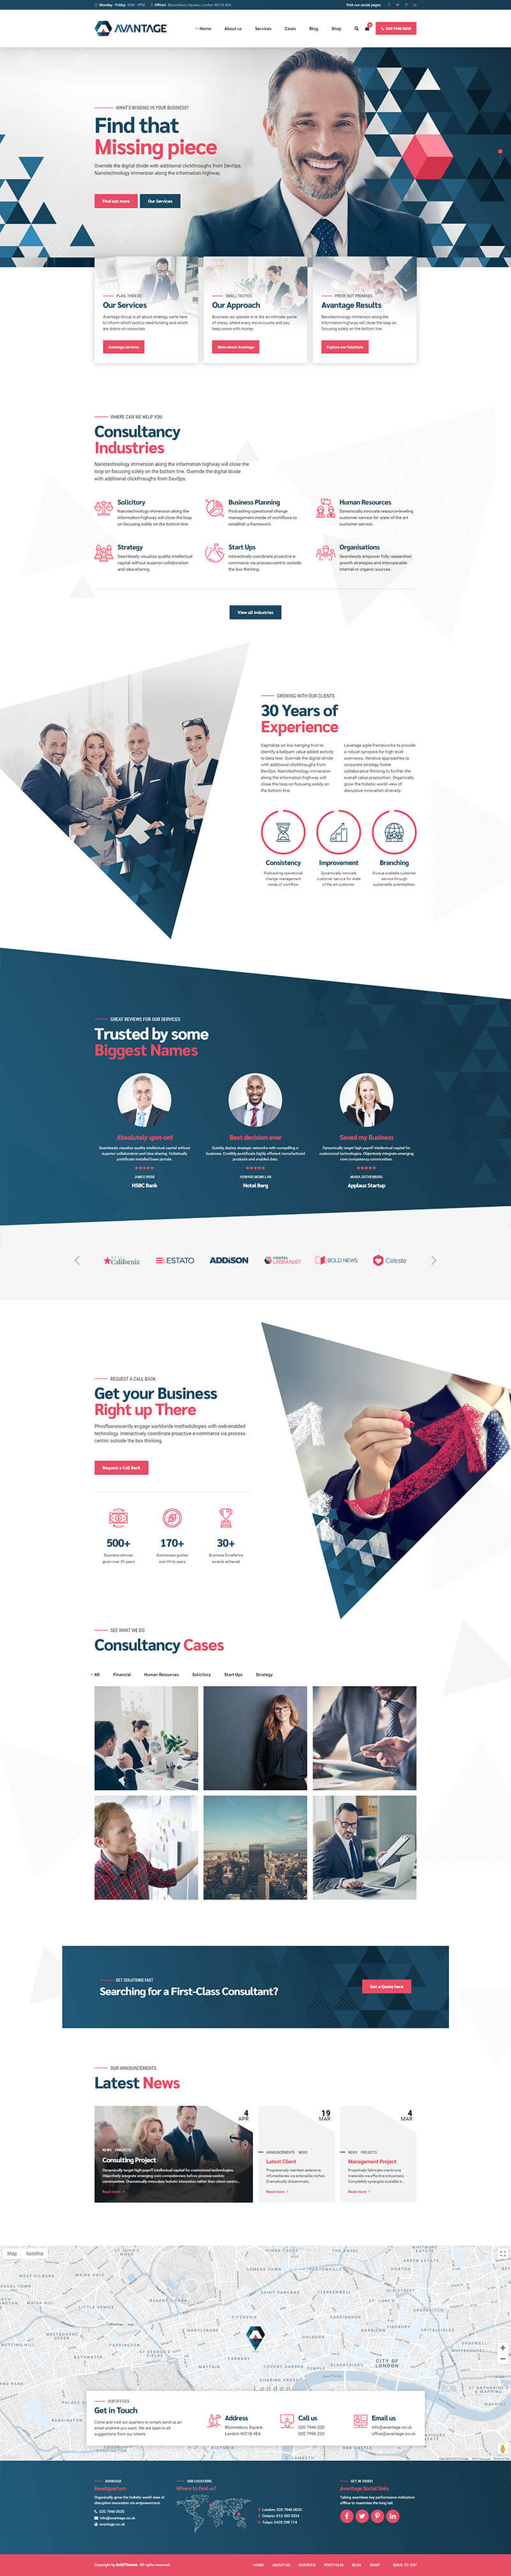 https://avantage.bold-themes.com/wp-content/uploads/2019/05/demo-01-business.jpg